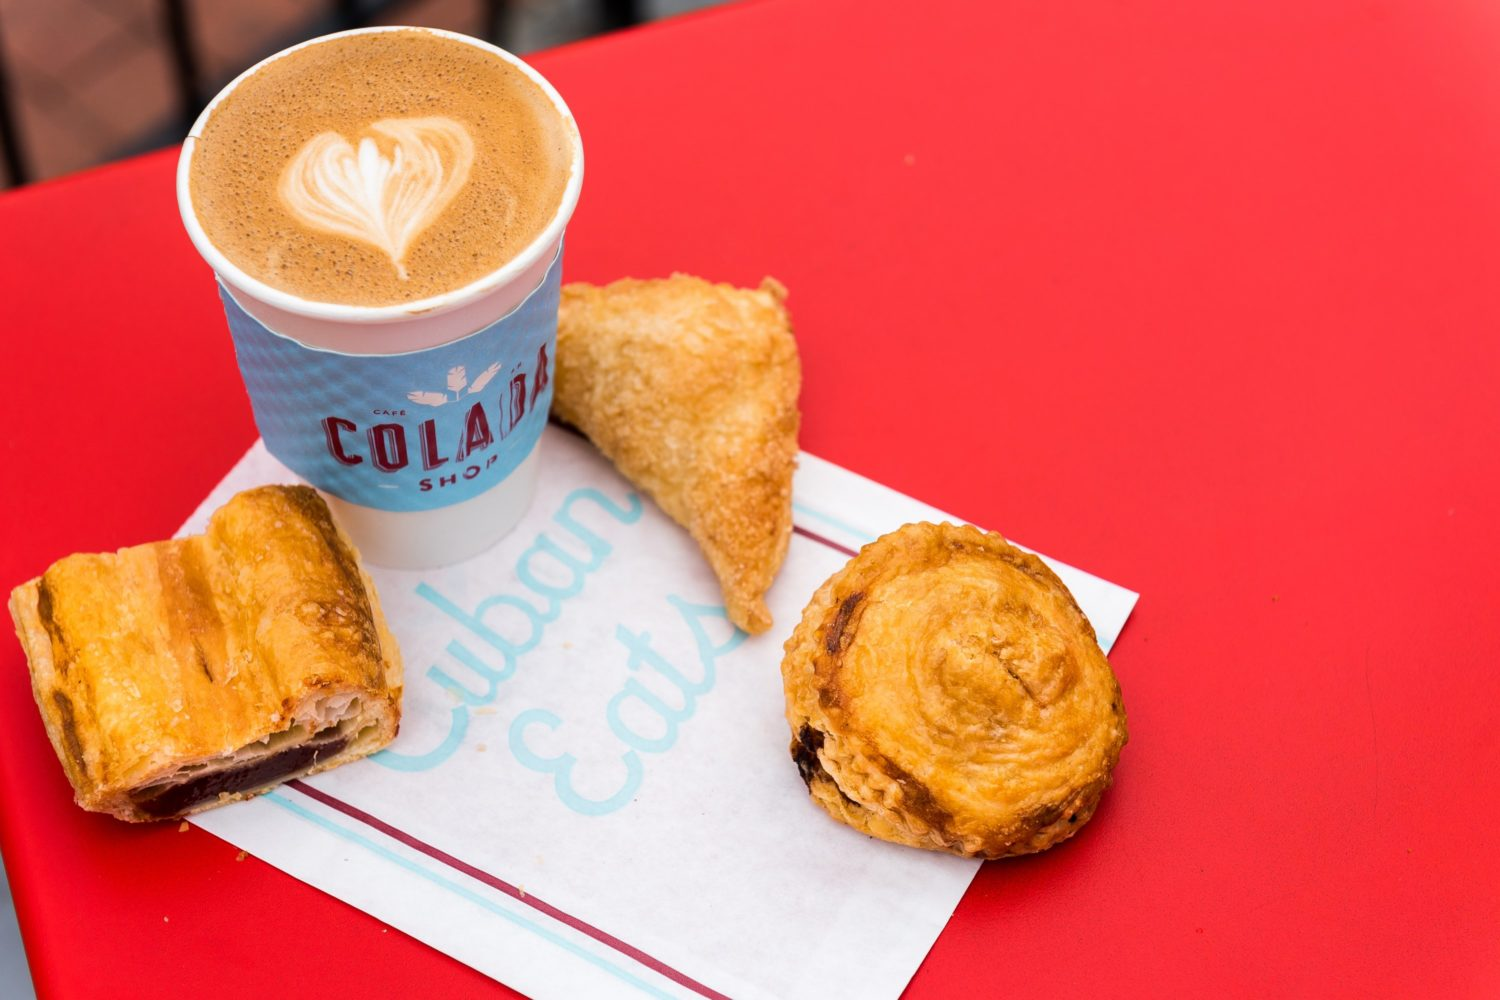 Coffee and pastries at Colada Shop. Photograph courtesy of Colada Shop.